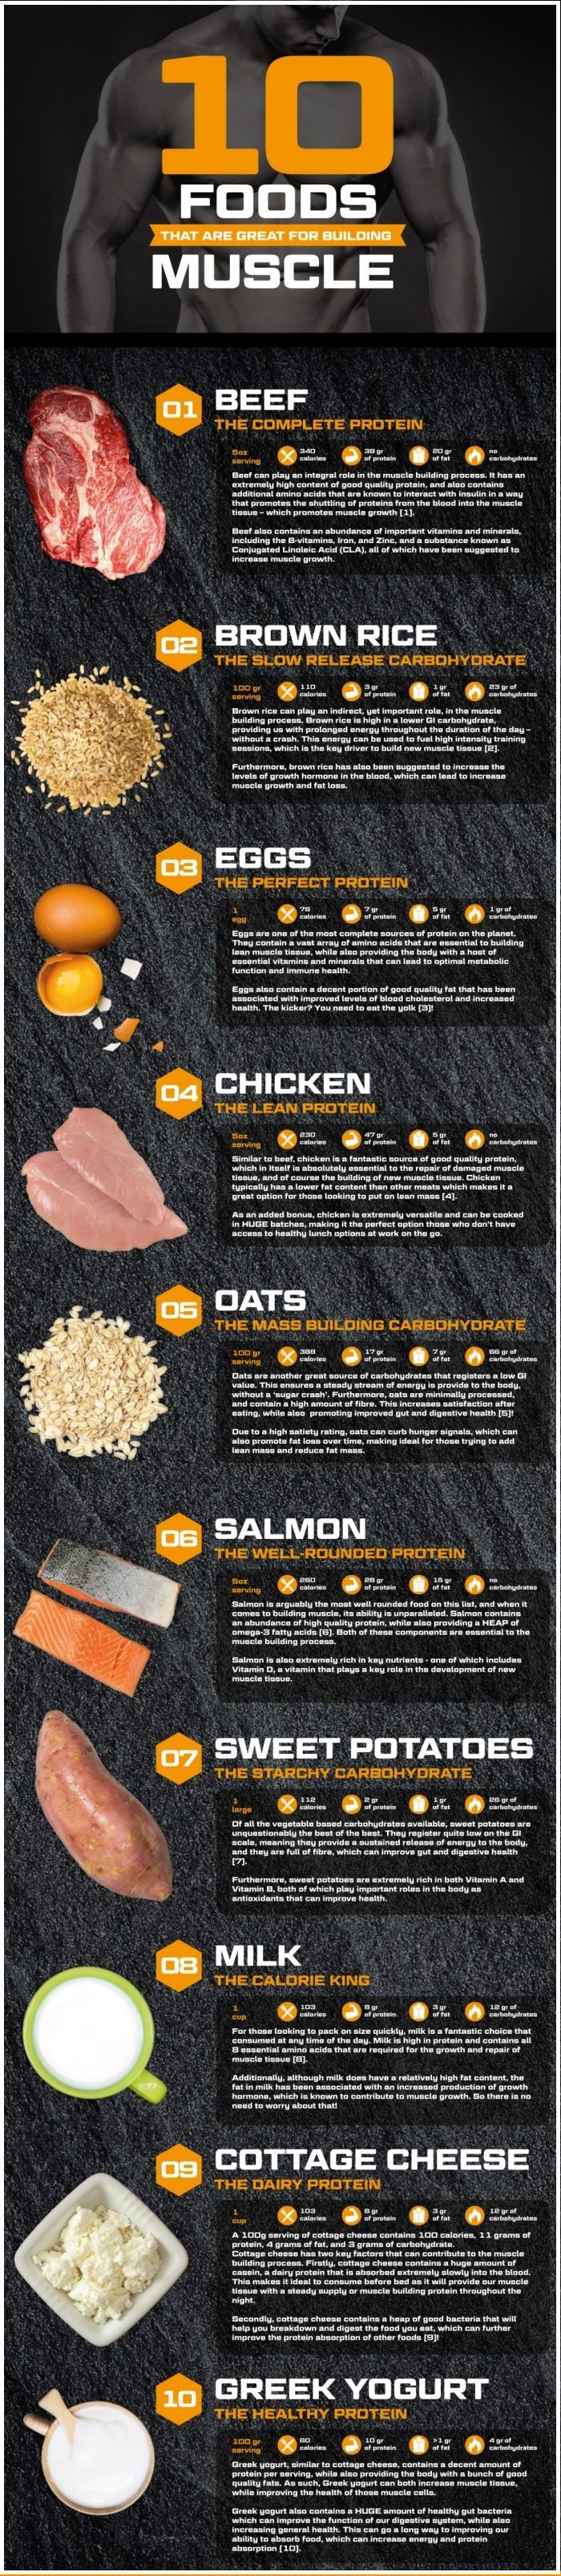 I have to give a shout outto anyone who's stuck to a diet through the holiday season. My daily food intake has been mostly eggnog and pumpkin pie, everithing is in muscle meals but I'm trying to do better in the new year. Probably time to pick up foods that will turn my fat into muscle! here is advice for muscle meals